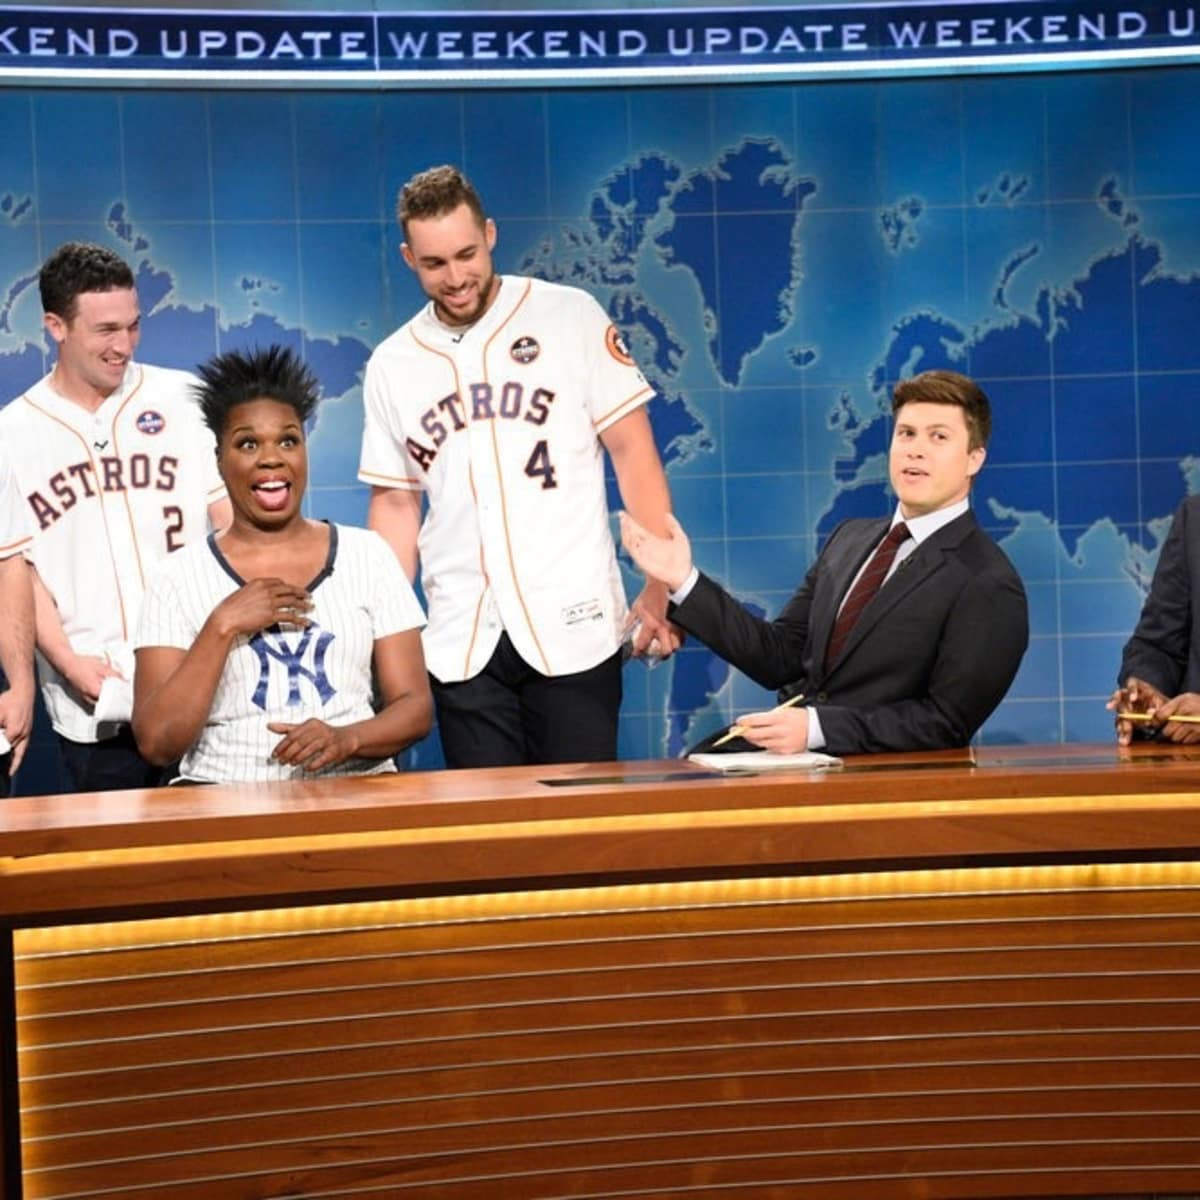 "José Altuve, Alex Bregman, George Springer,Leslie Jones, Colin Jost, Michael Che on Saturday Night Live ""Weekend Update"""